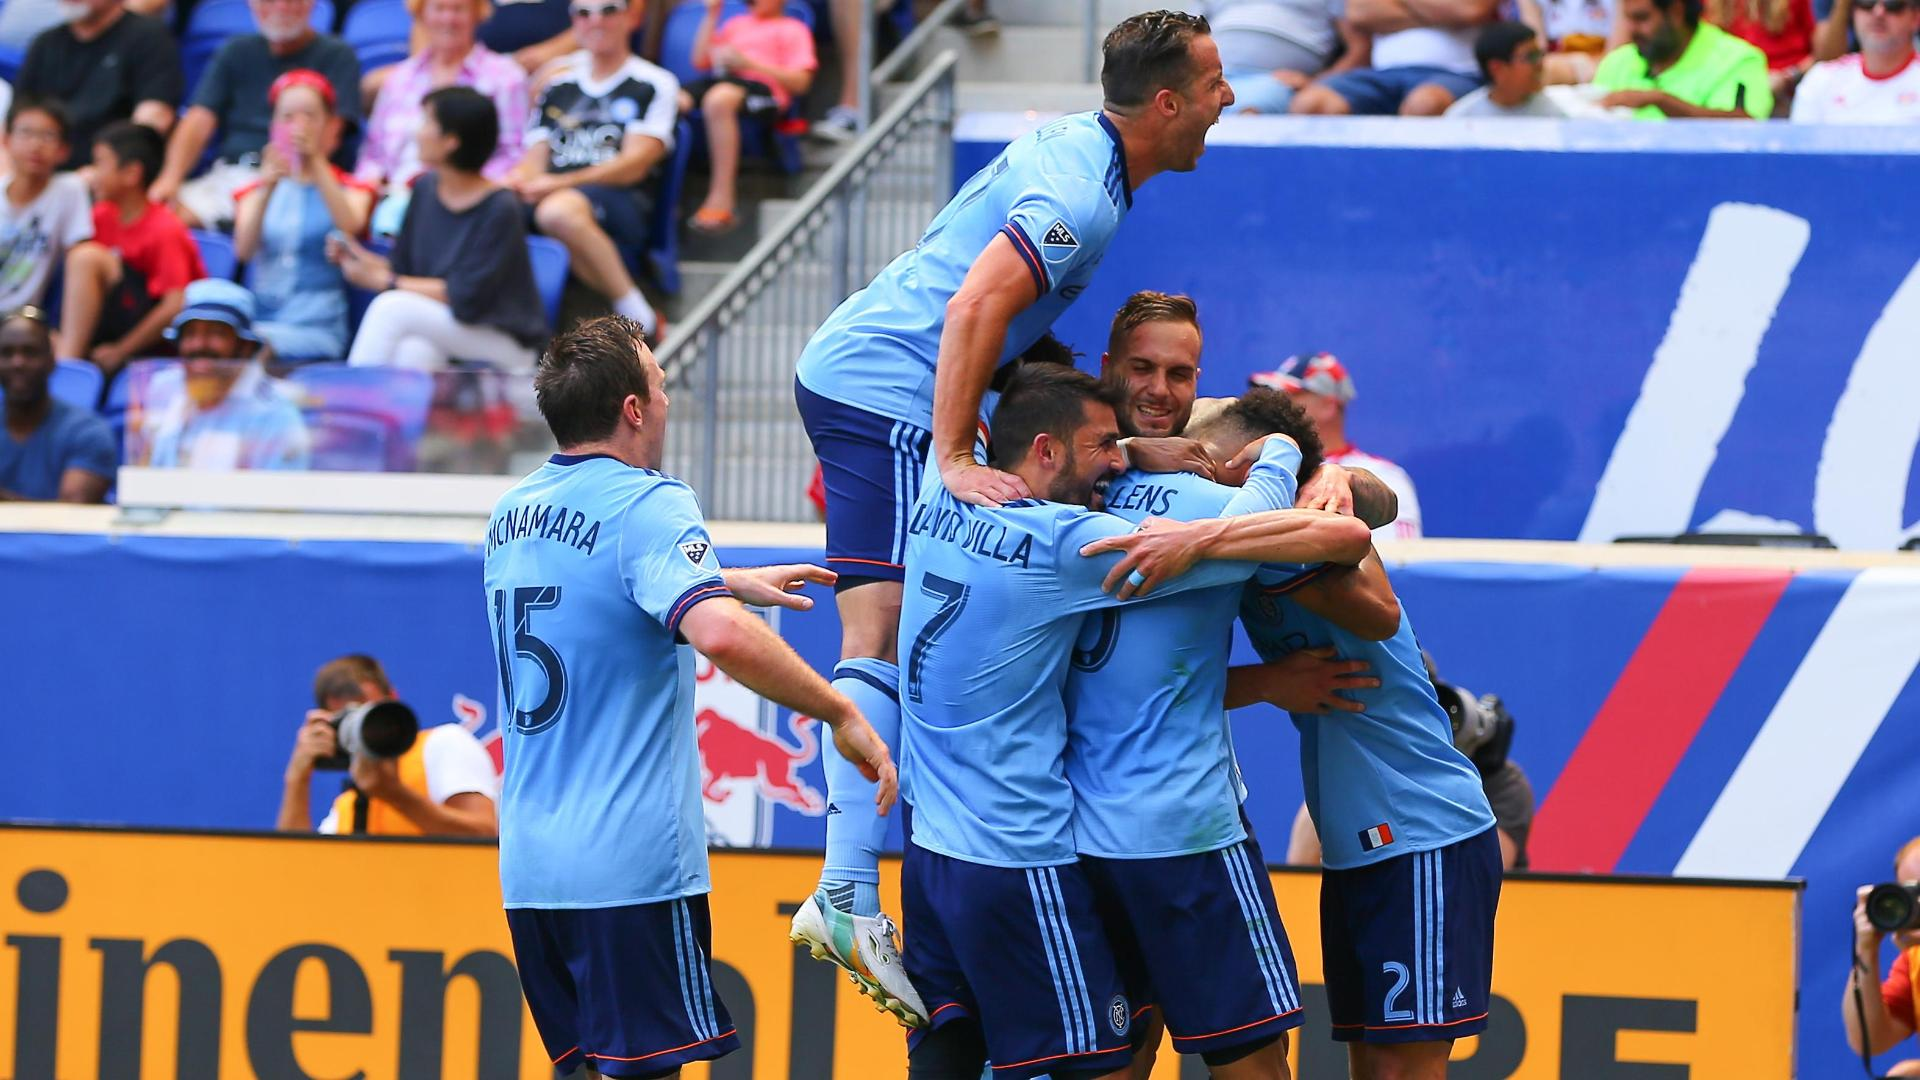 Red Bulls 0-2 NYCFC: Hudson River runs blue